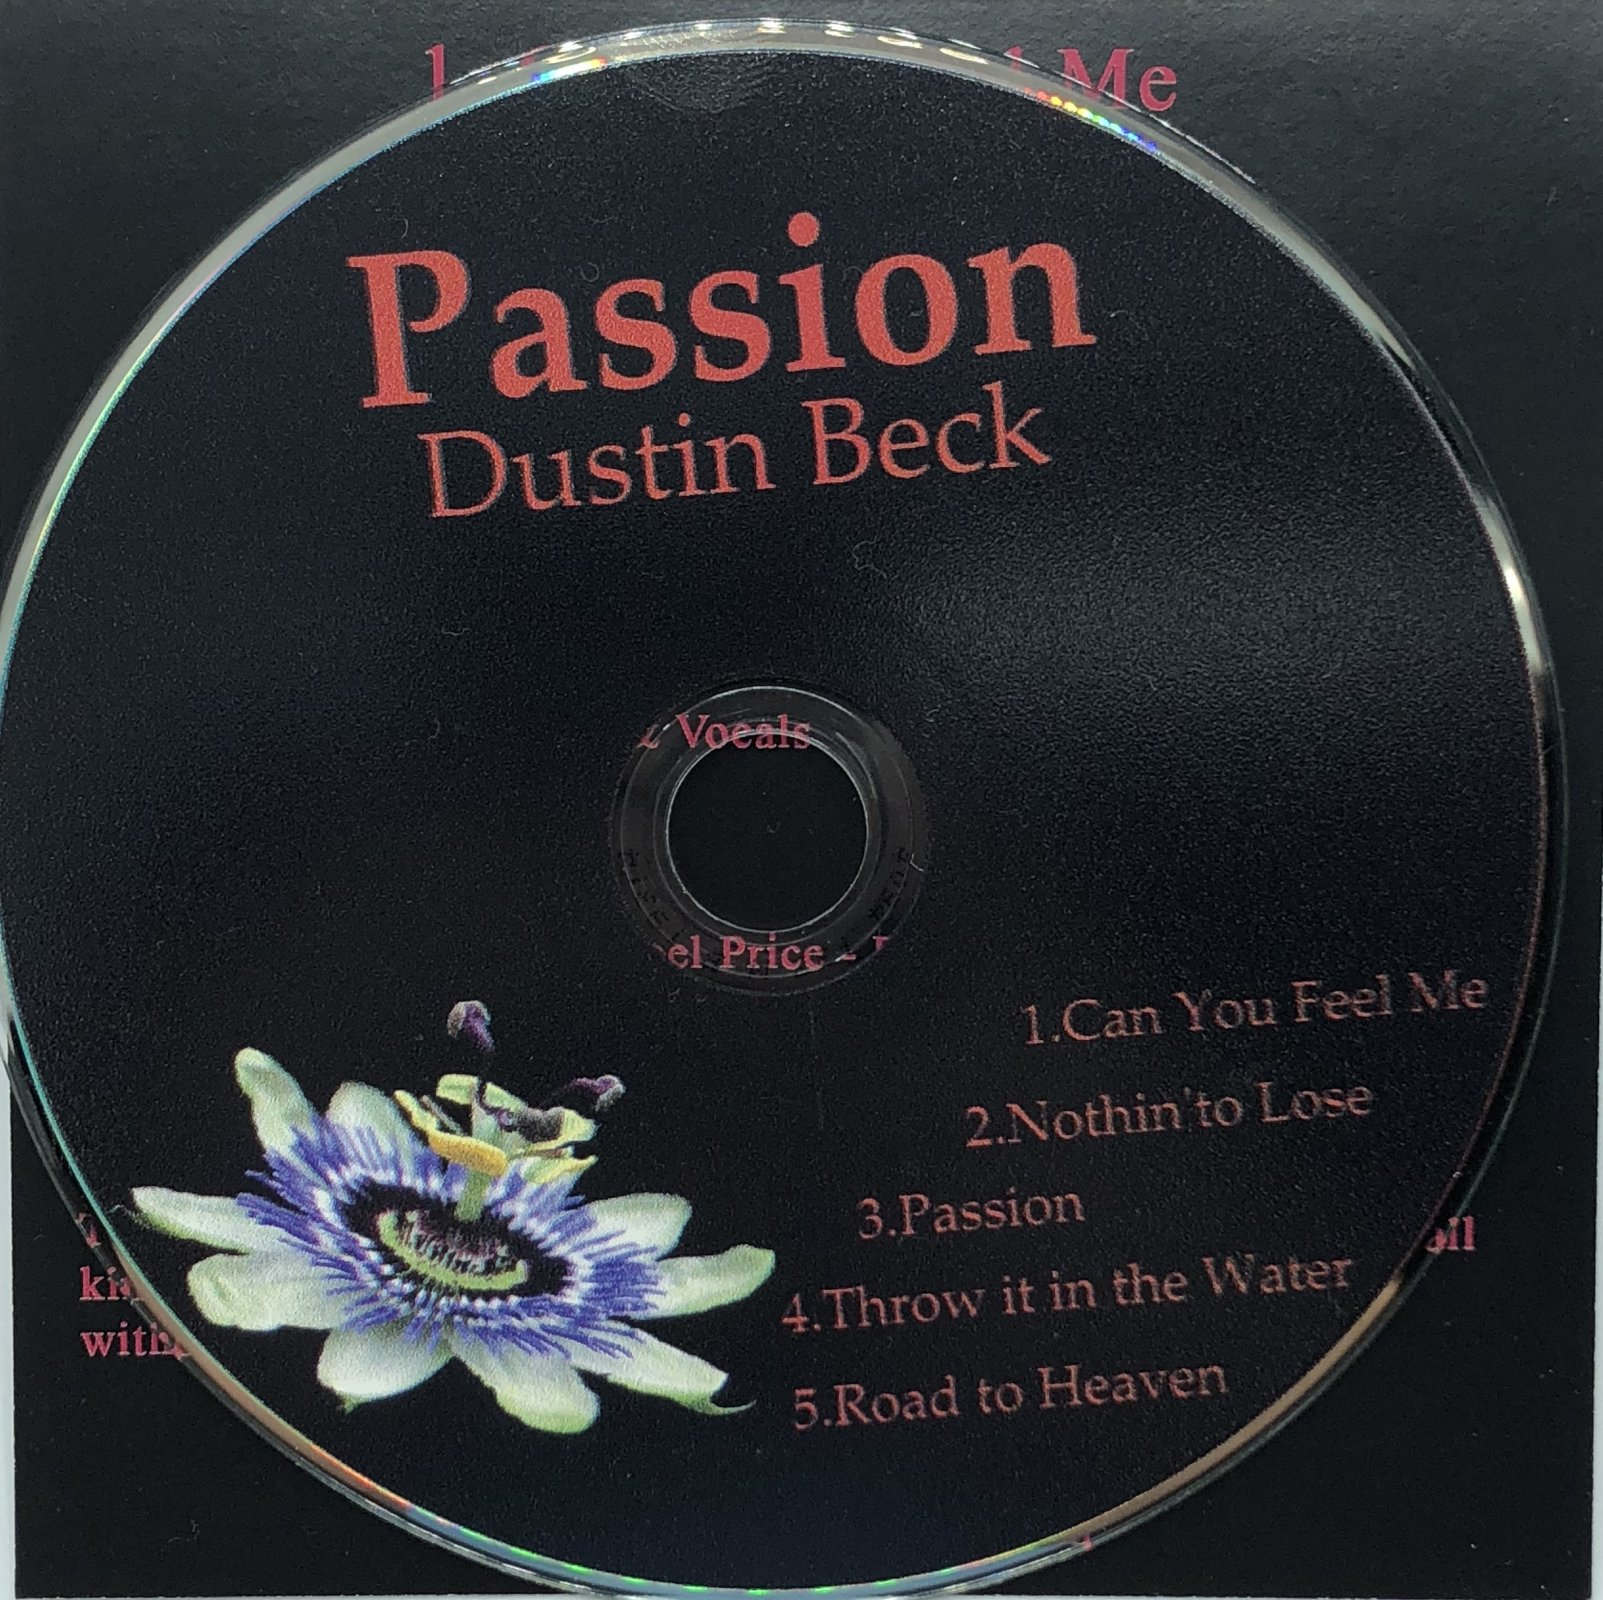 Passion Dustin Beck